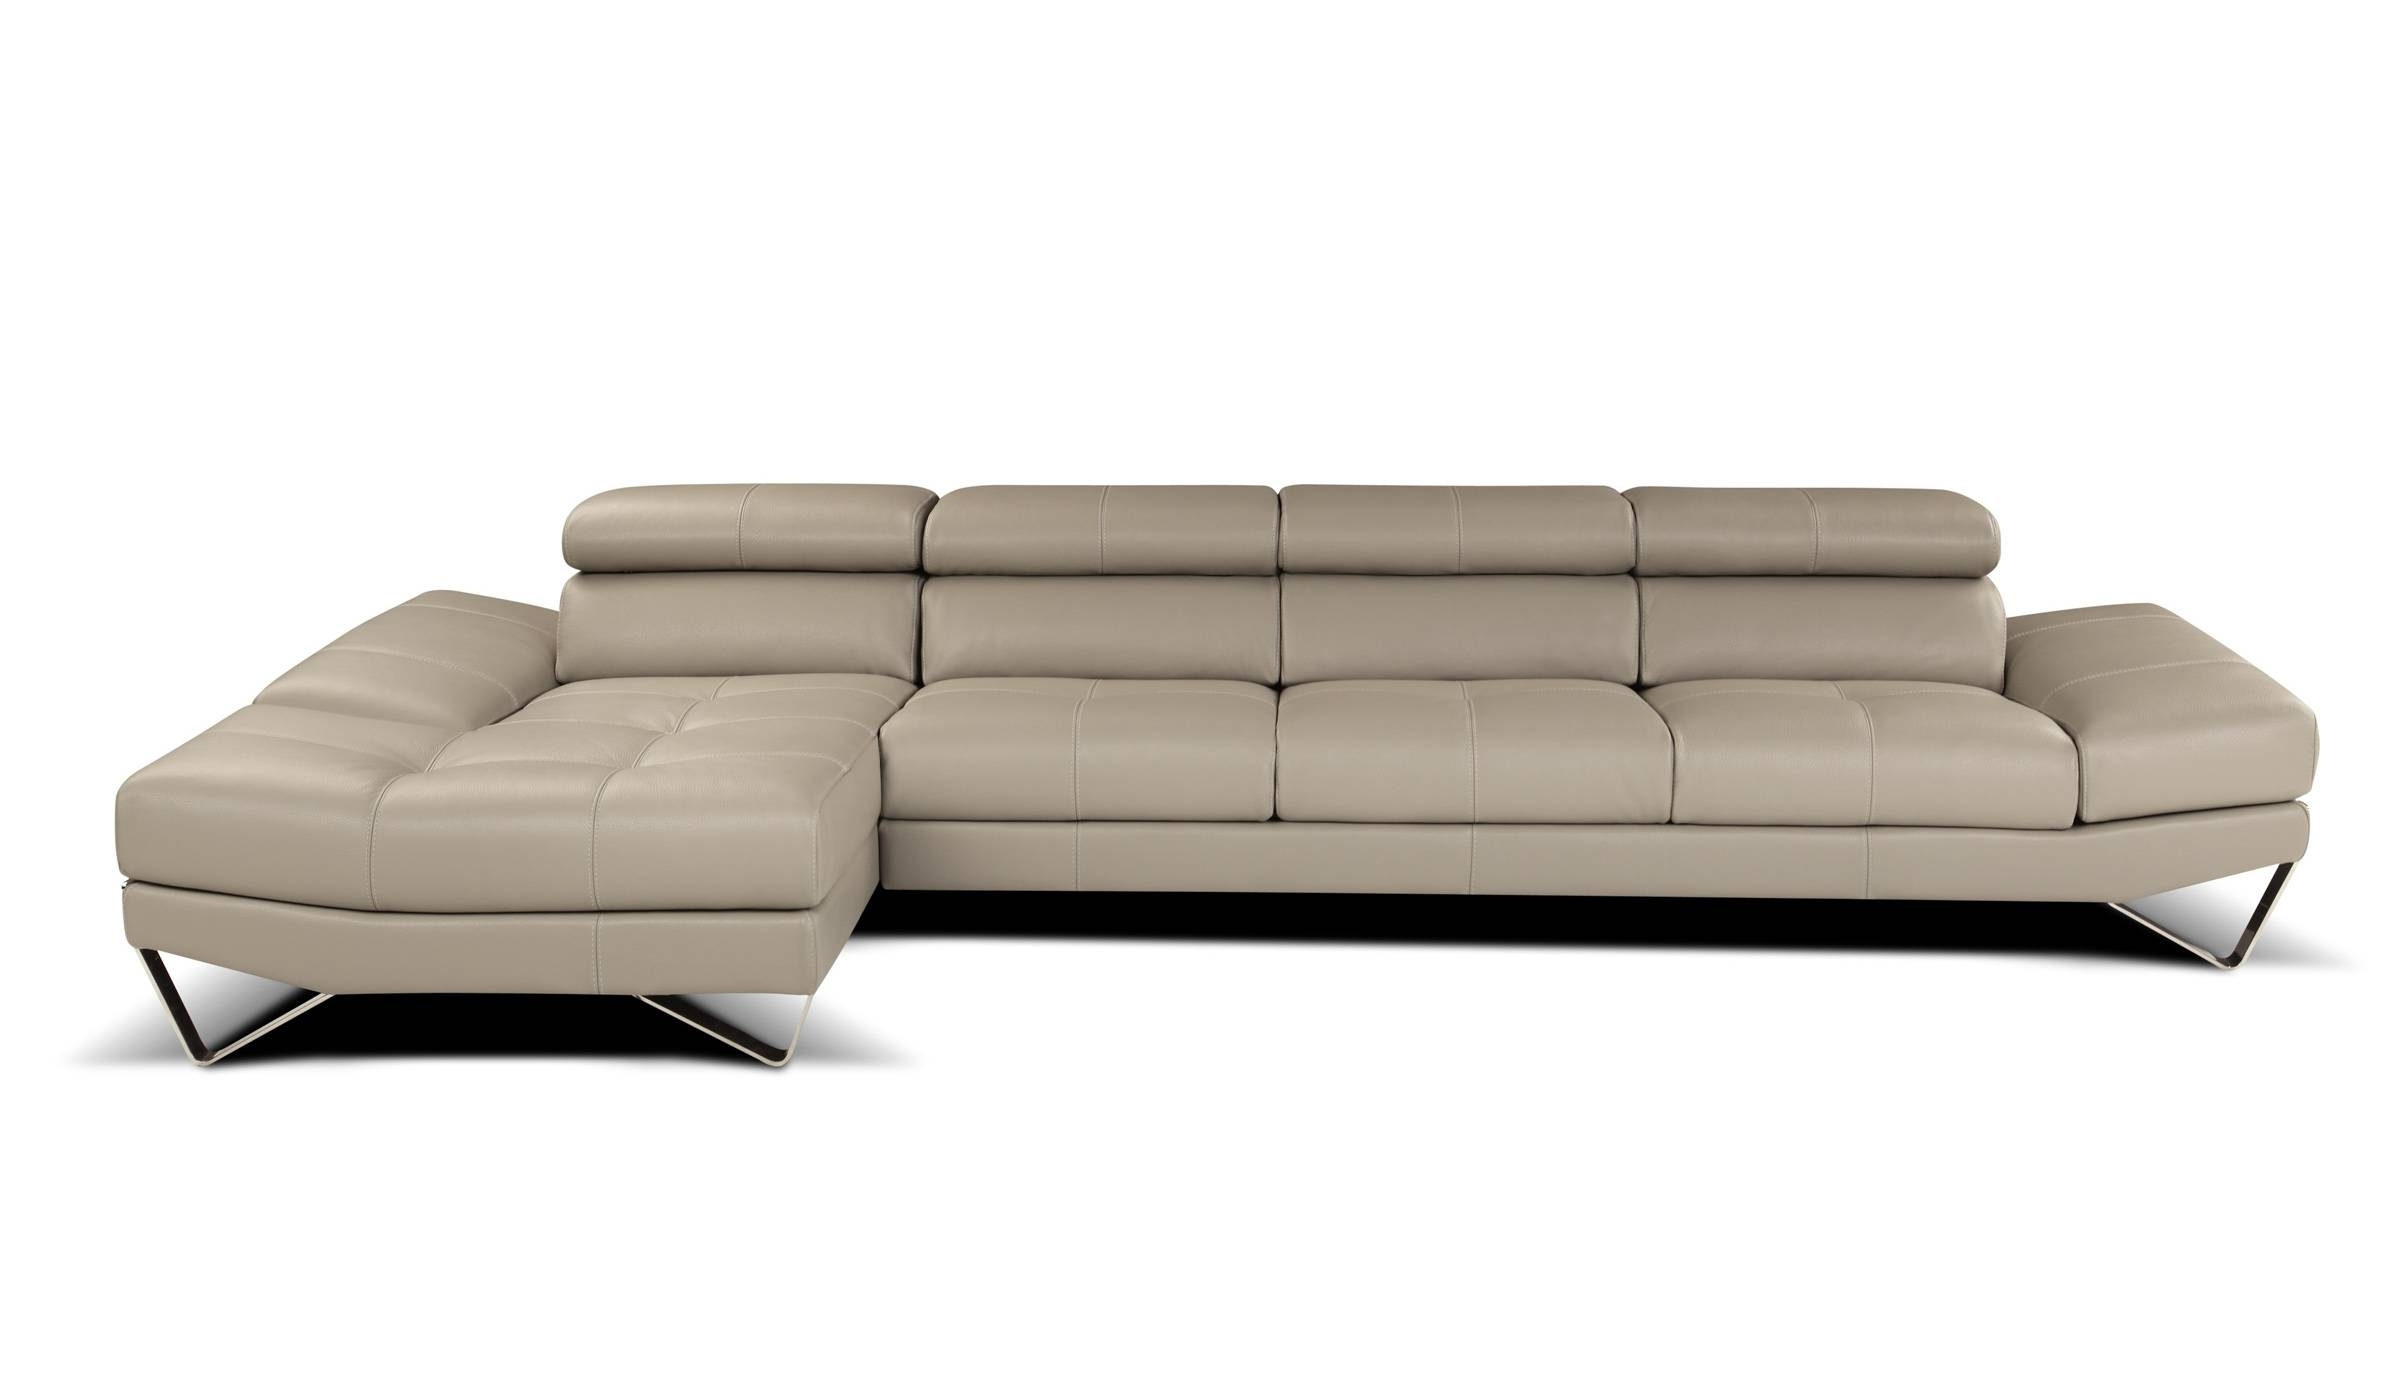 High End Sofas Intended For Well Liked Sophisticated All Italian Leather Sectional Sofa Spokane (View 5 of 20)